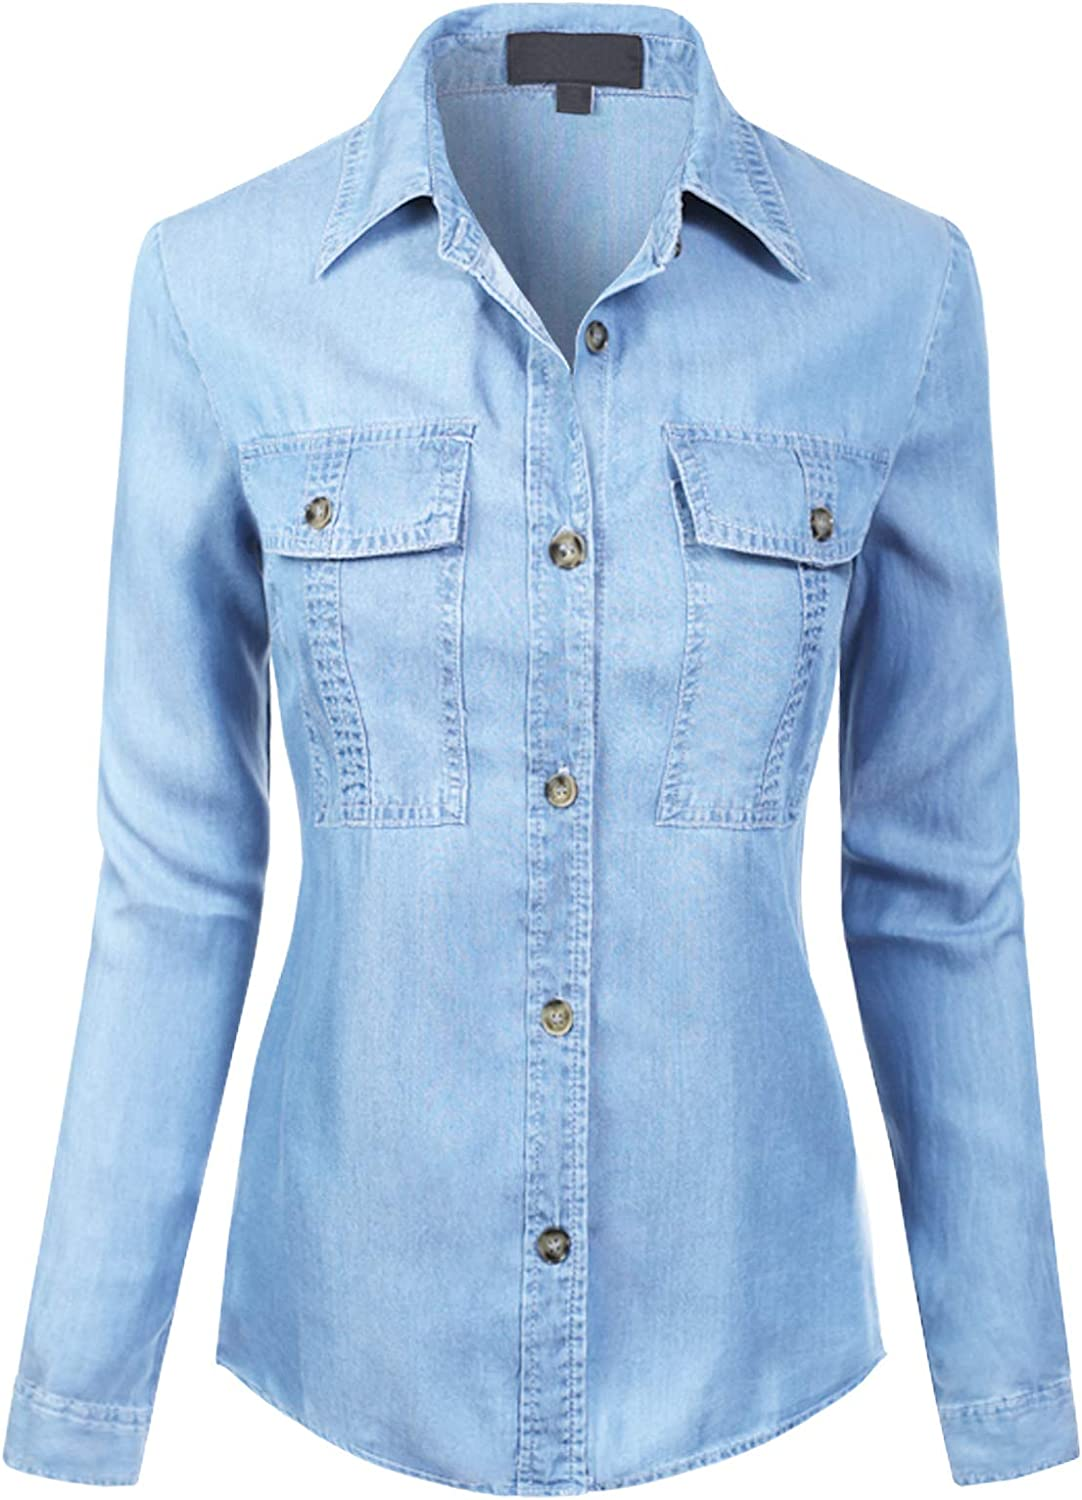 MixMatchy Women's Classic Long Sleeve Button Down Tencel Shirt with Pockets: Clothing